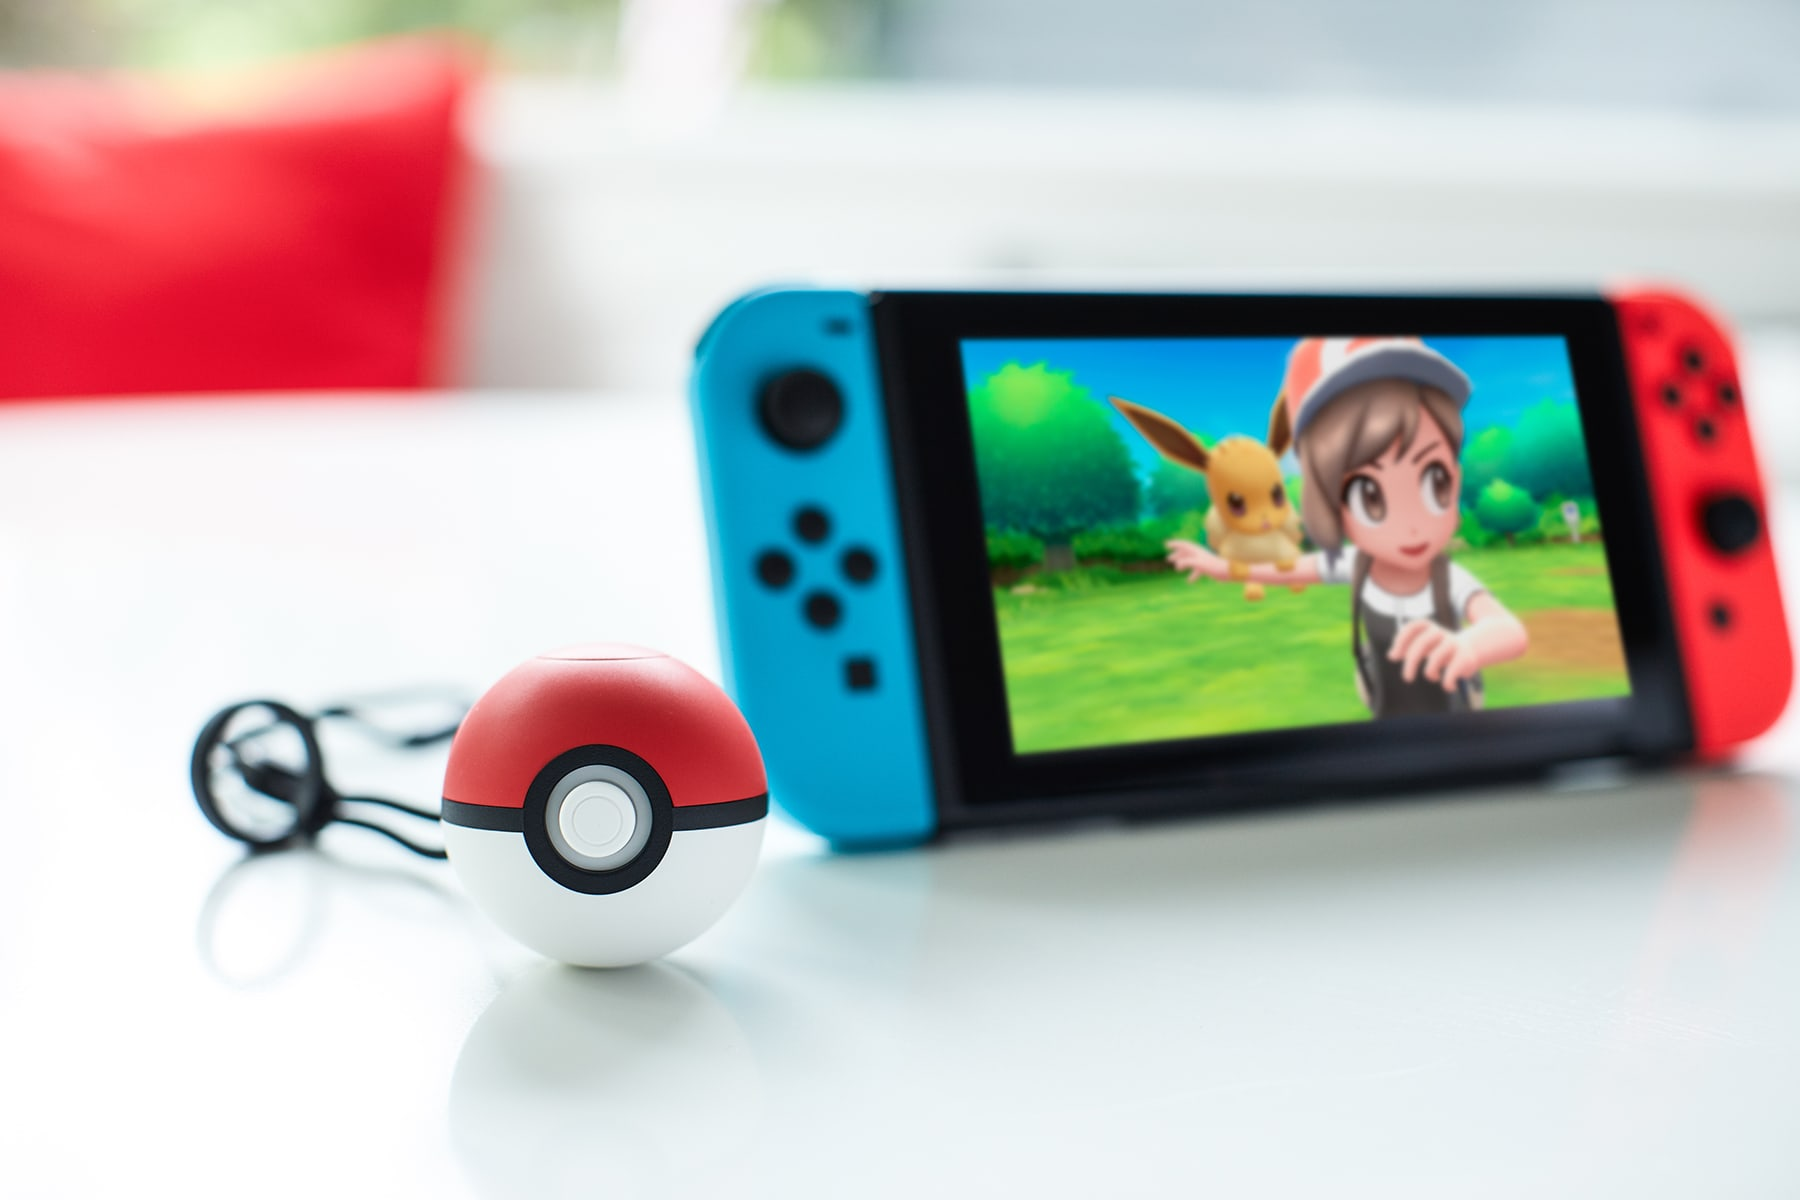 Pokémon: Let's Go, Pikachu!' doesn't feel like a remake